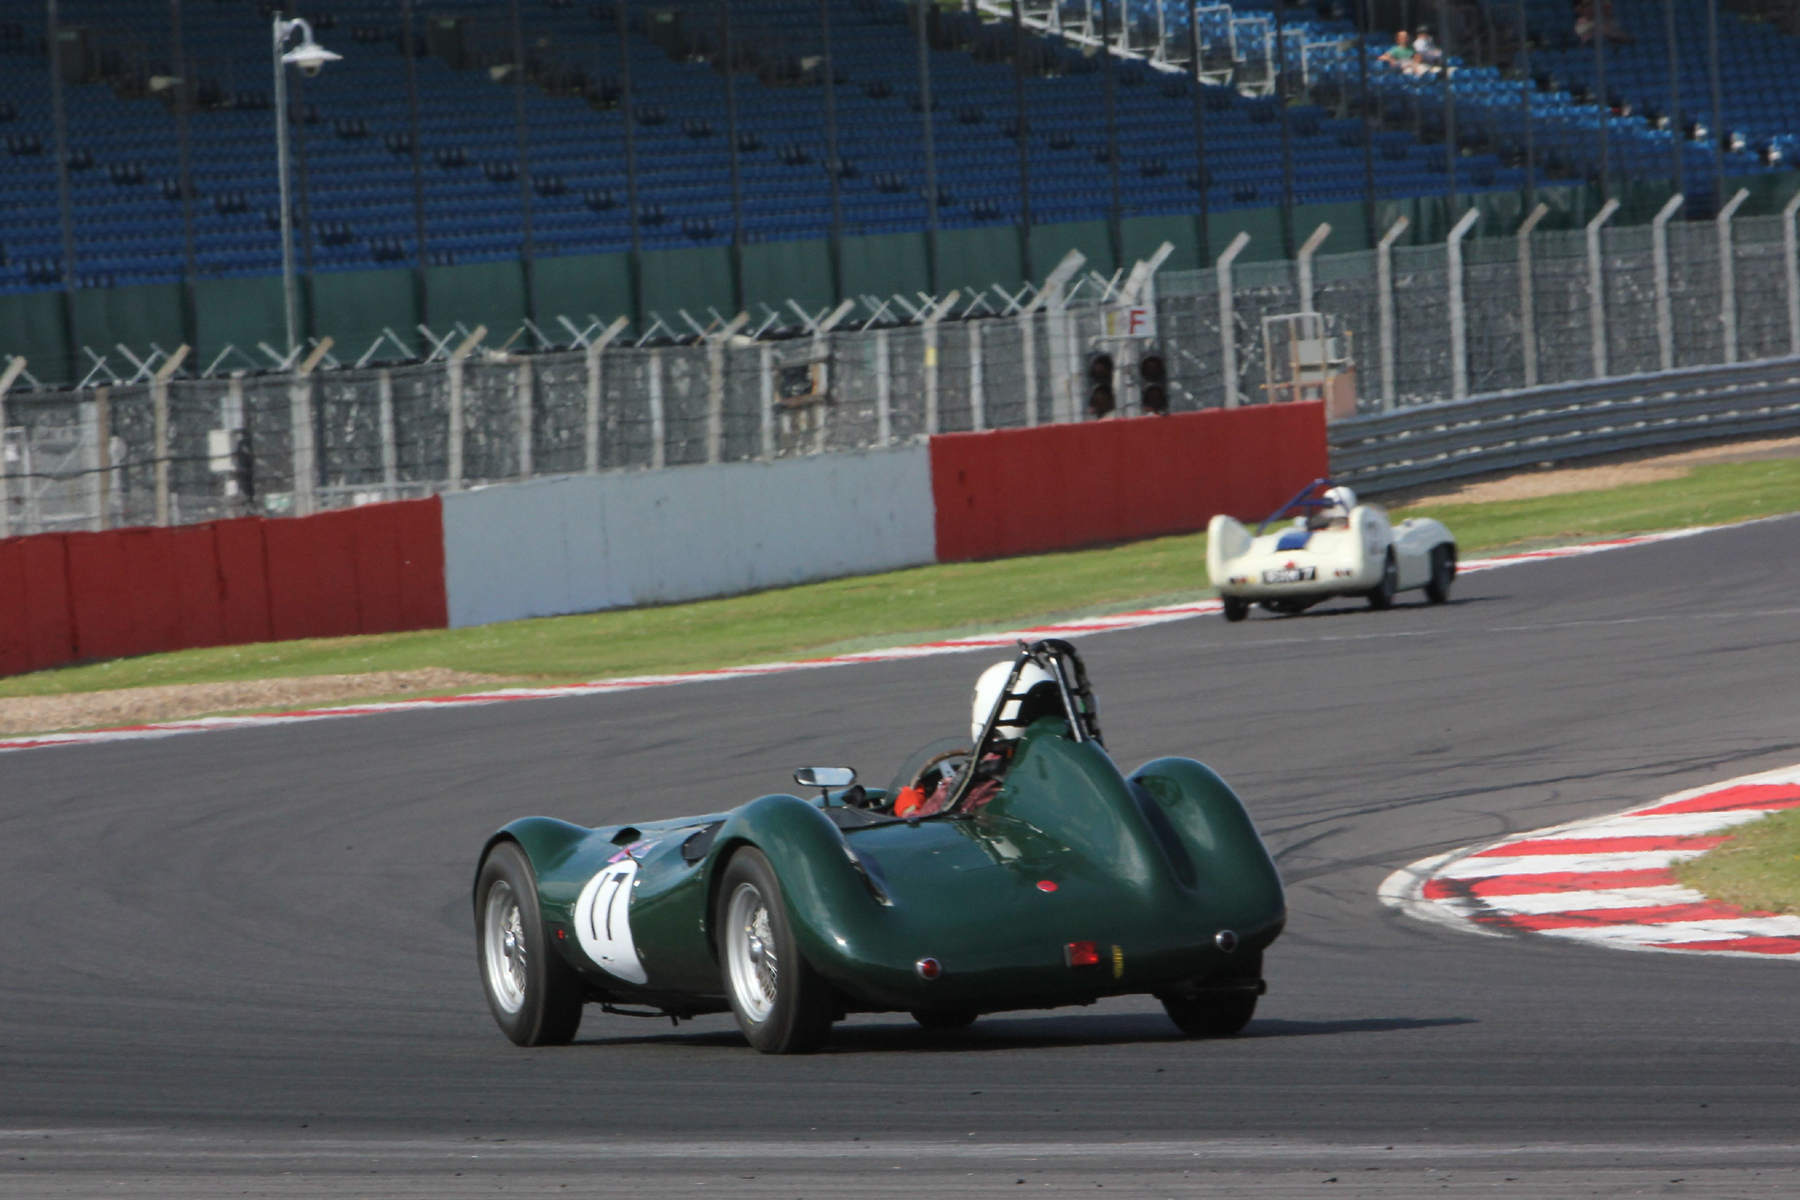 This was about as close as Alex got to Brian but he vowed to make Brian's race much more difficult at Donington in August when we hope to see Rod Begbie give both of them a run for their money in his Elva Mk4.         Photo - Pat Arculus